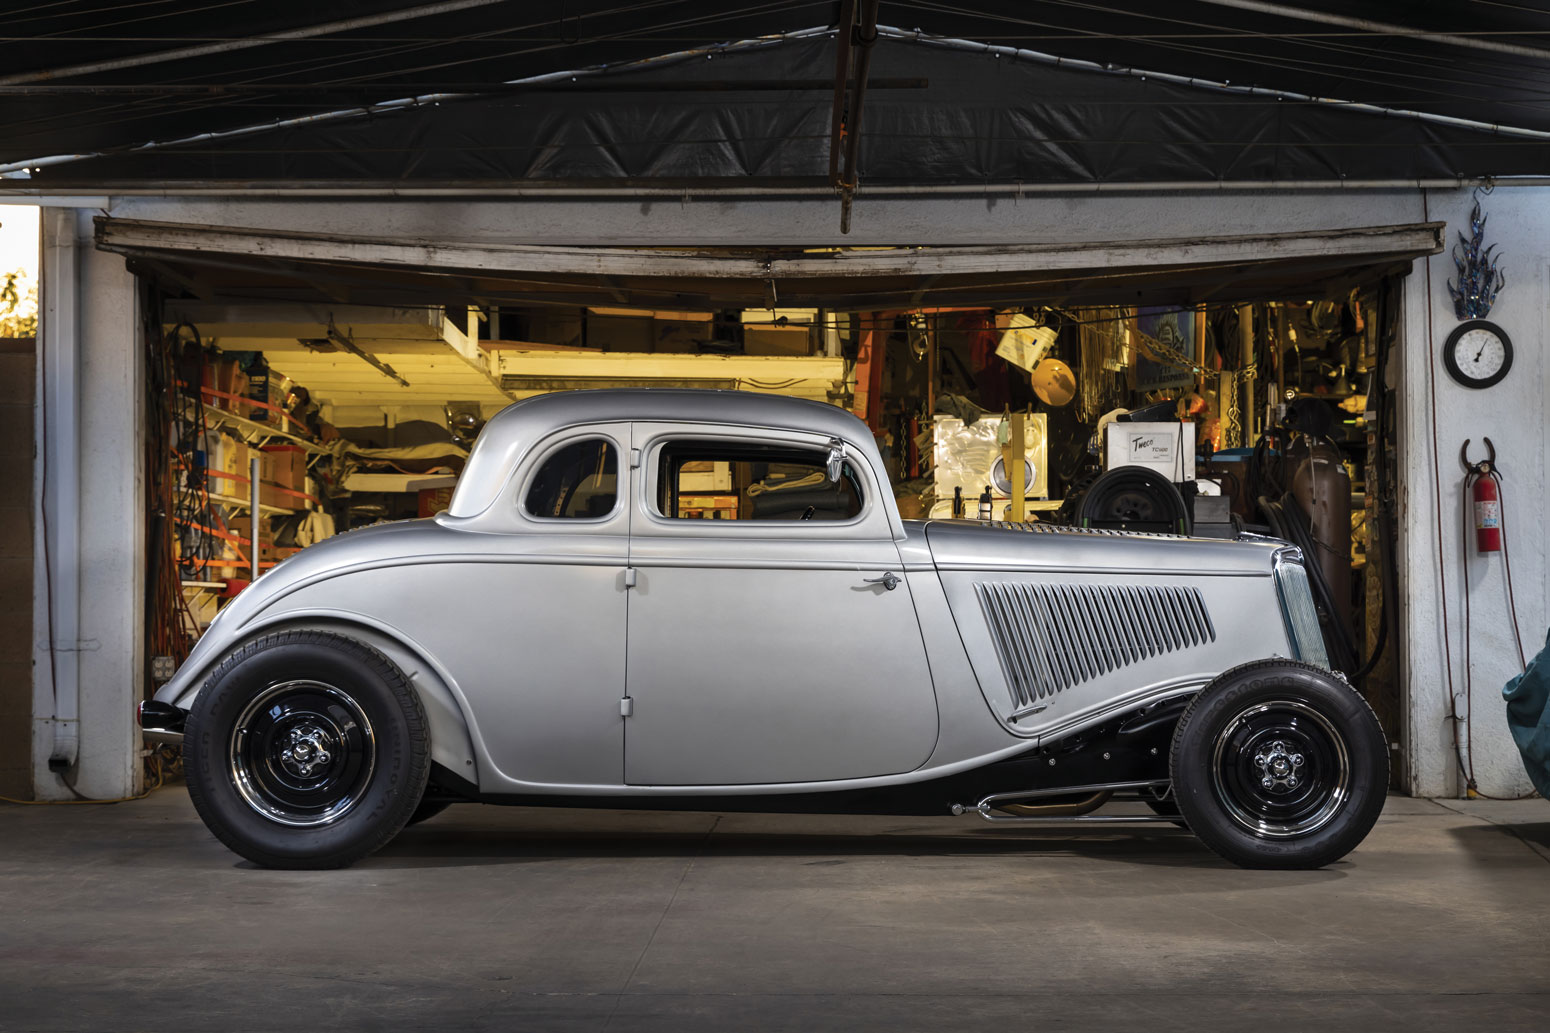 03 SoCal built 1934 ford highboy coupe custom built from several different vehicles